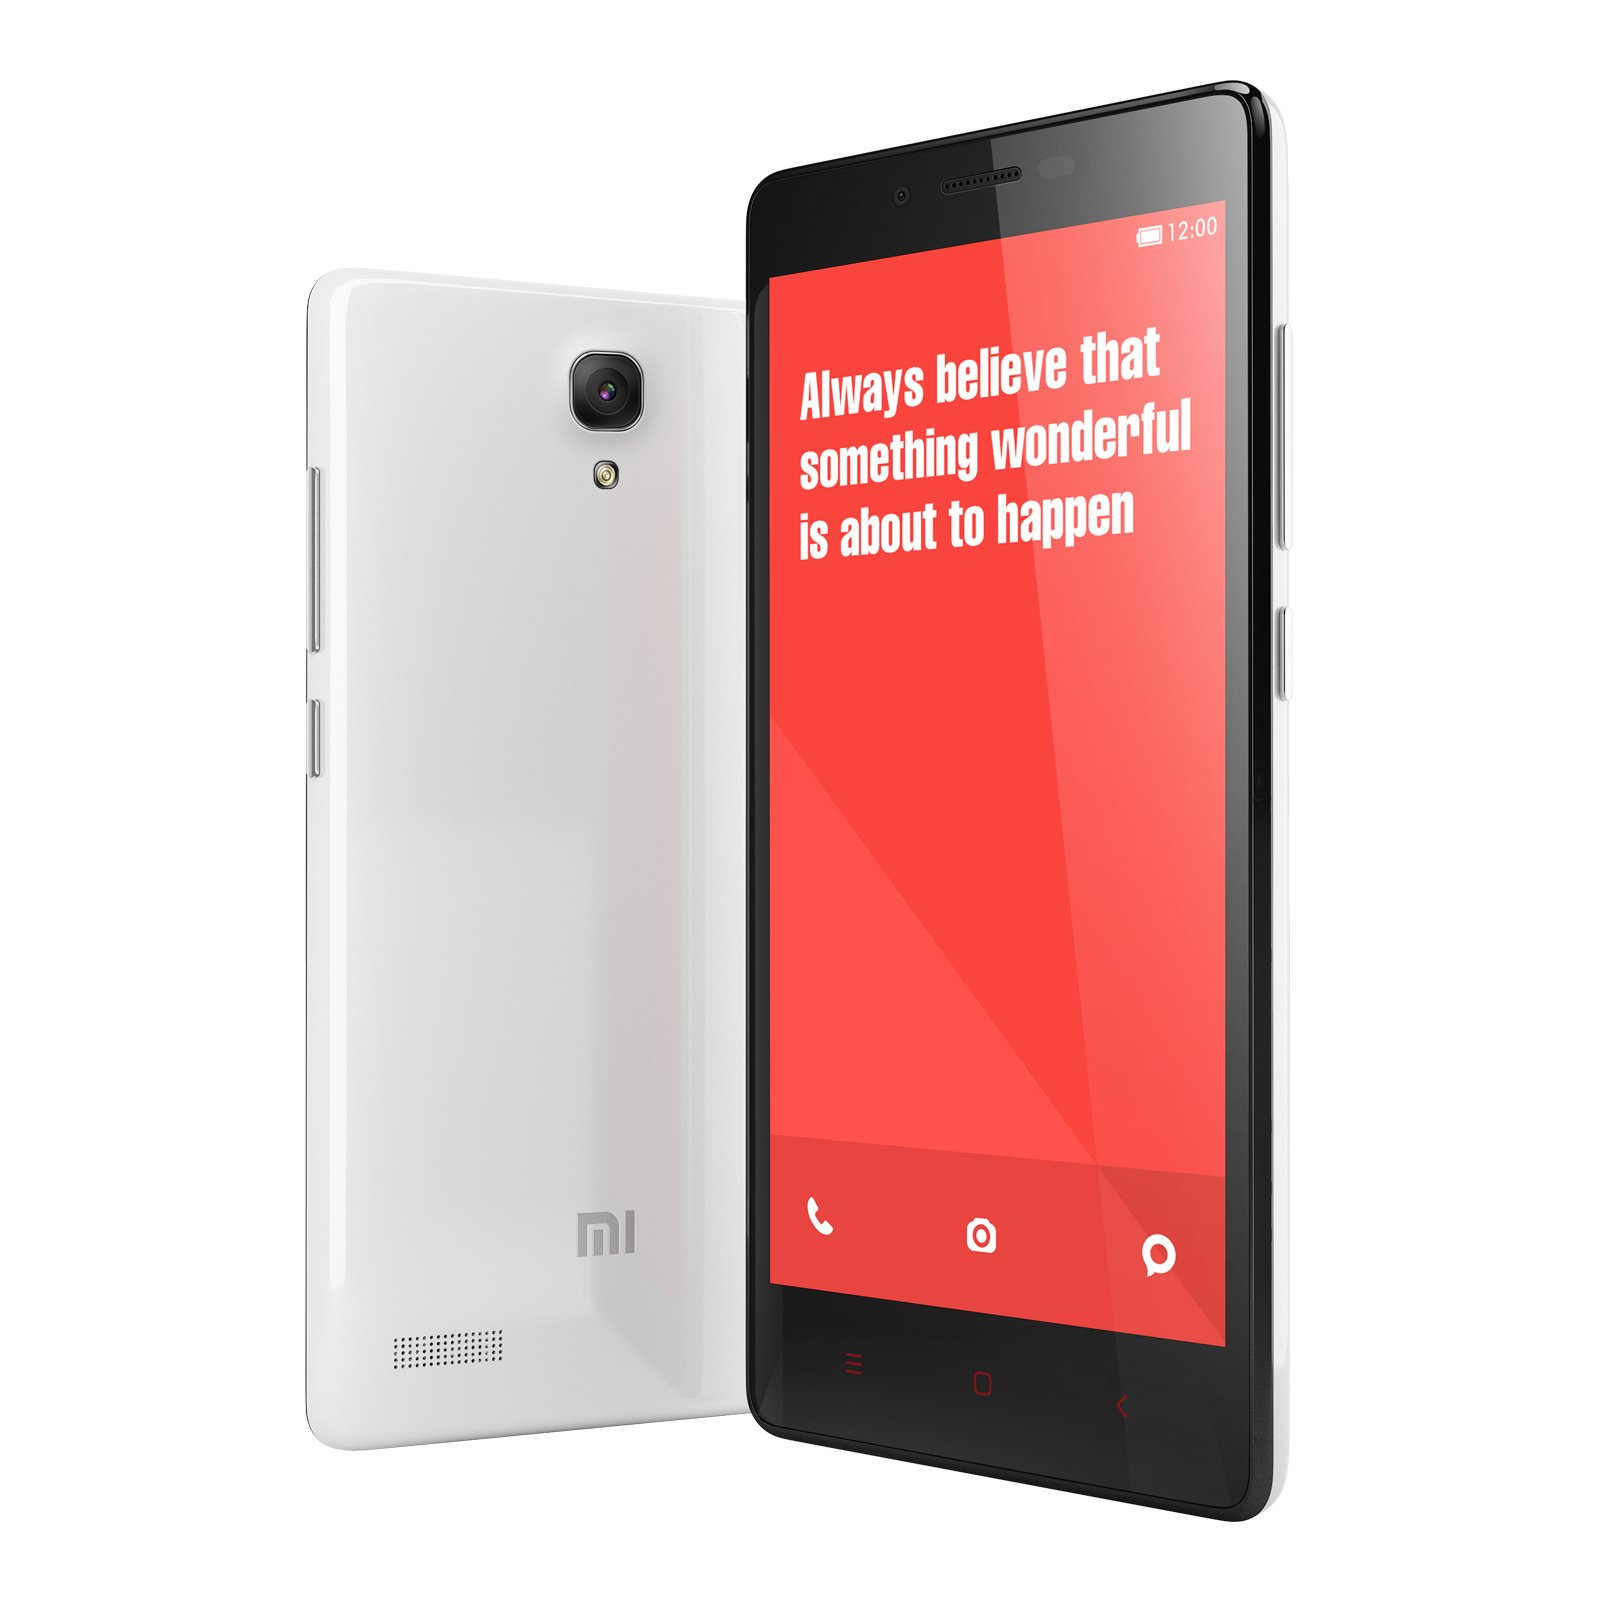 Xiaomi Redmi Note 4G LineageOS 15 ROM arrives with Android